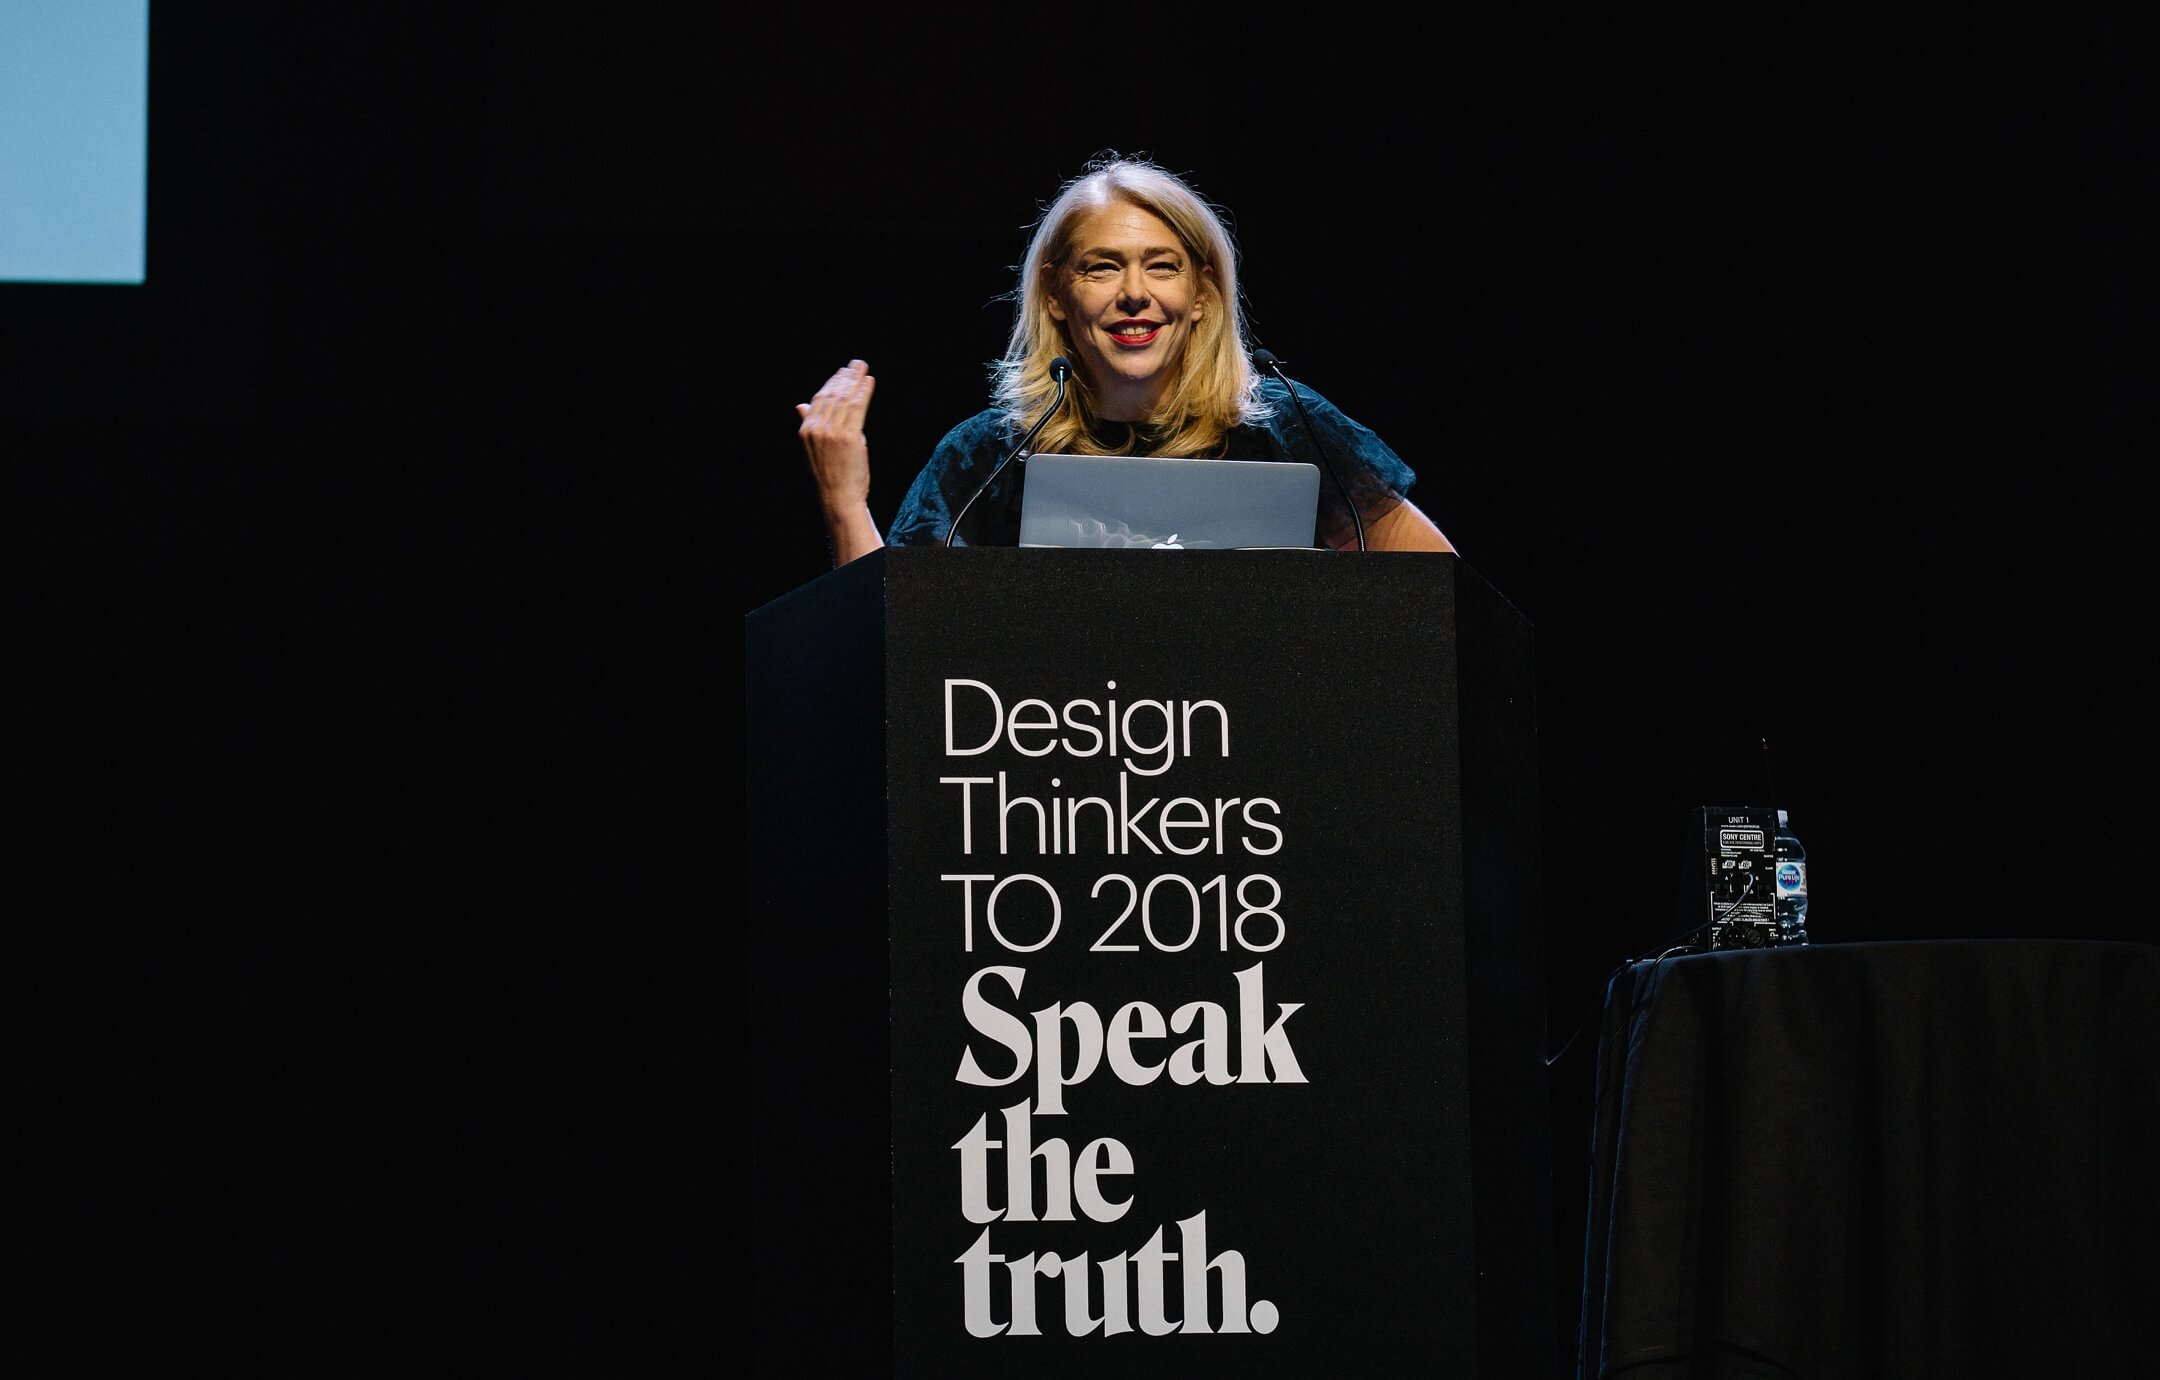 Bonnie Siegler onstage at DesignThinkers 2018 Toronto. Photograph by Connie Tsang.